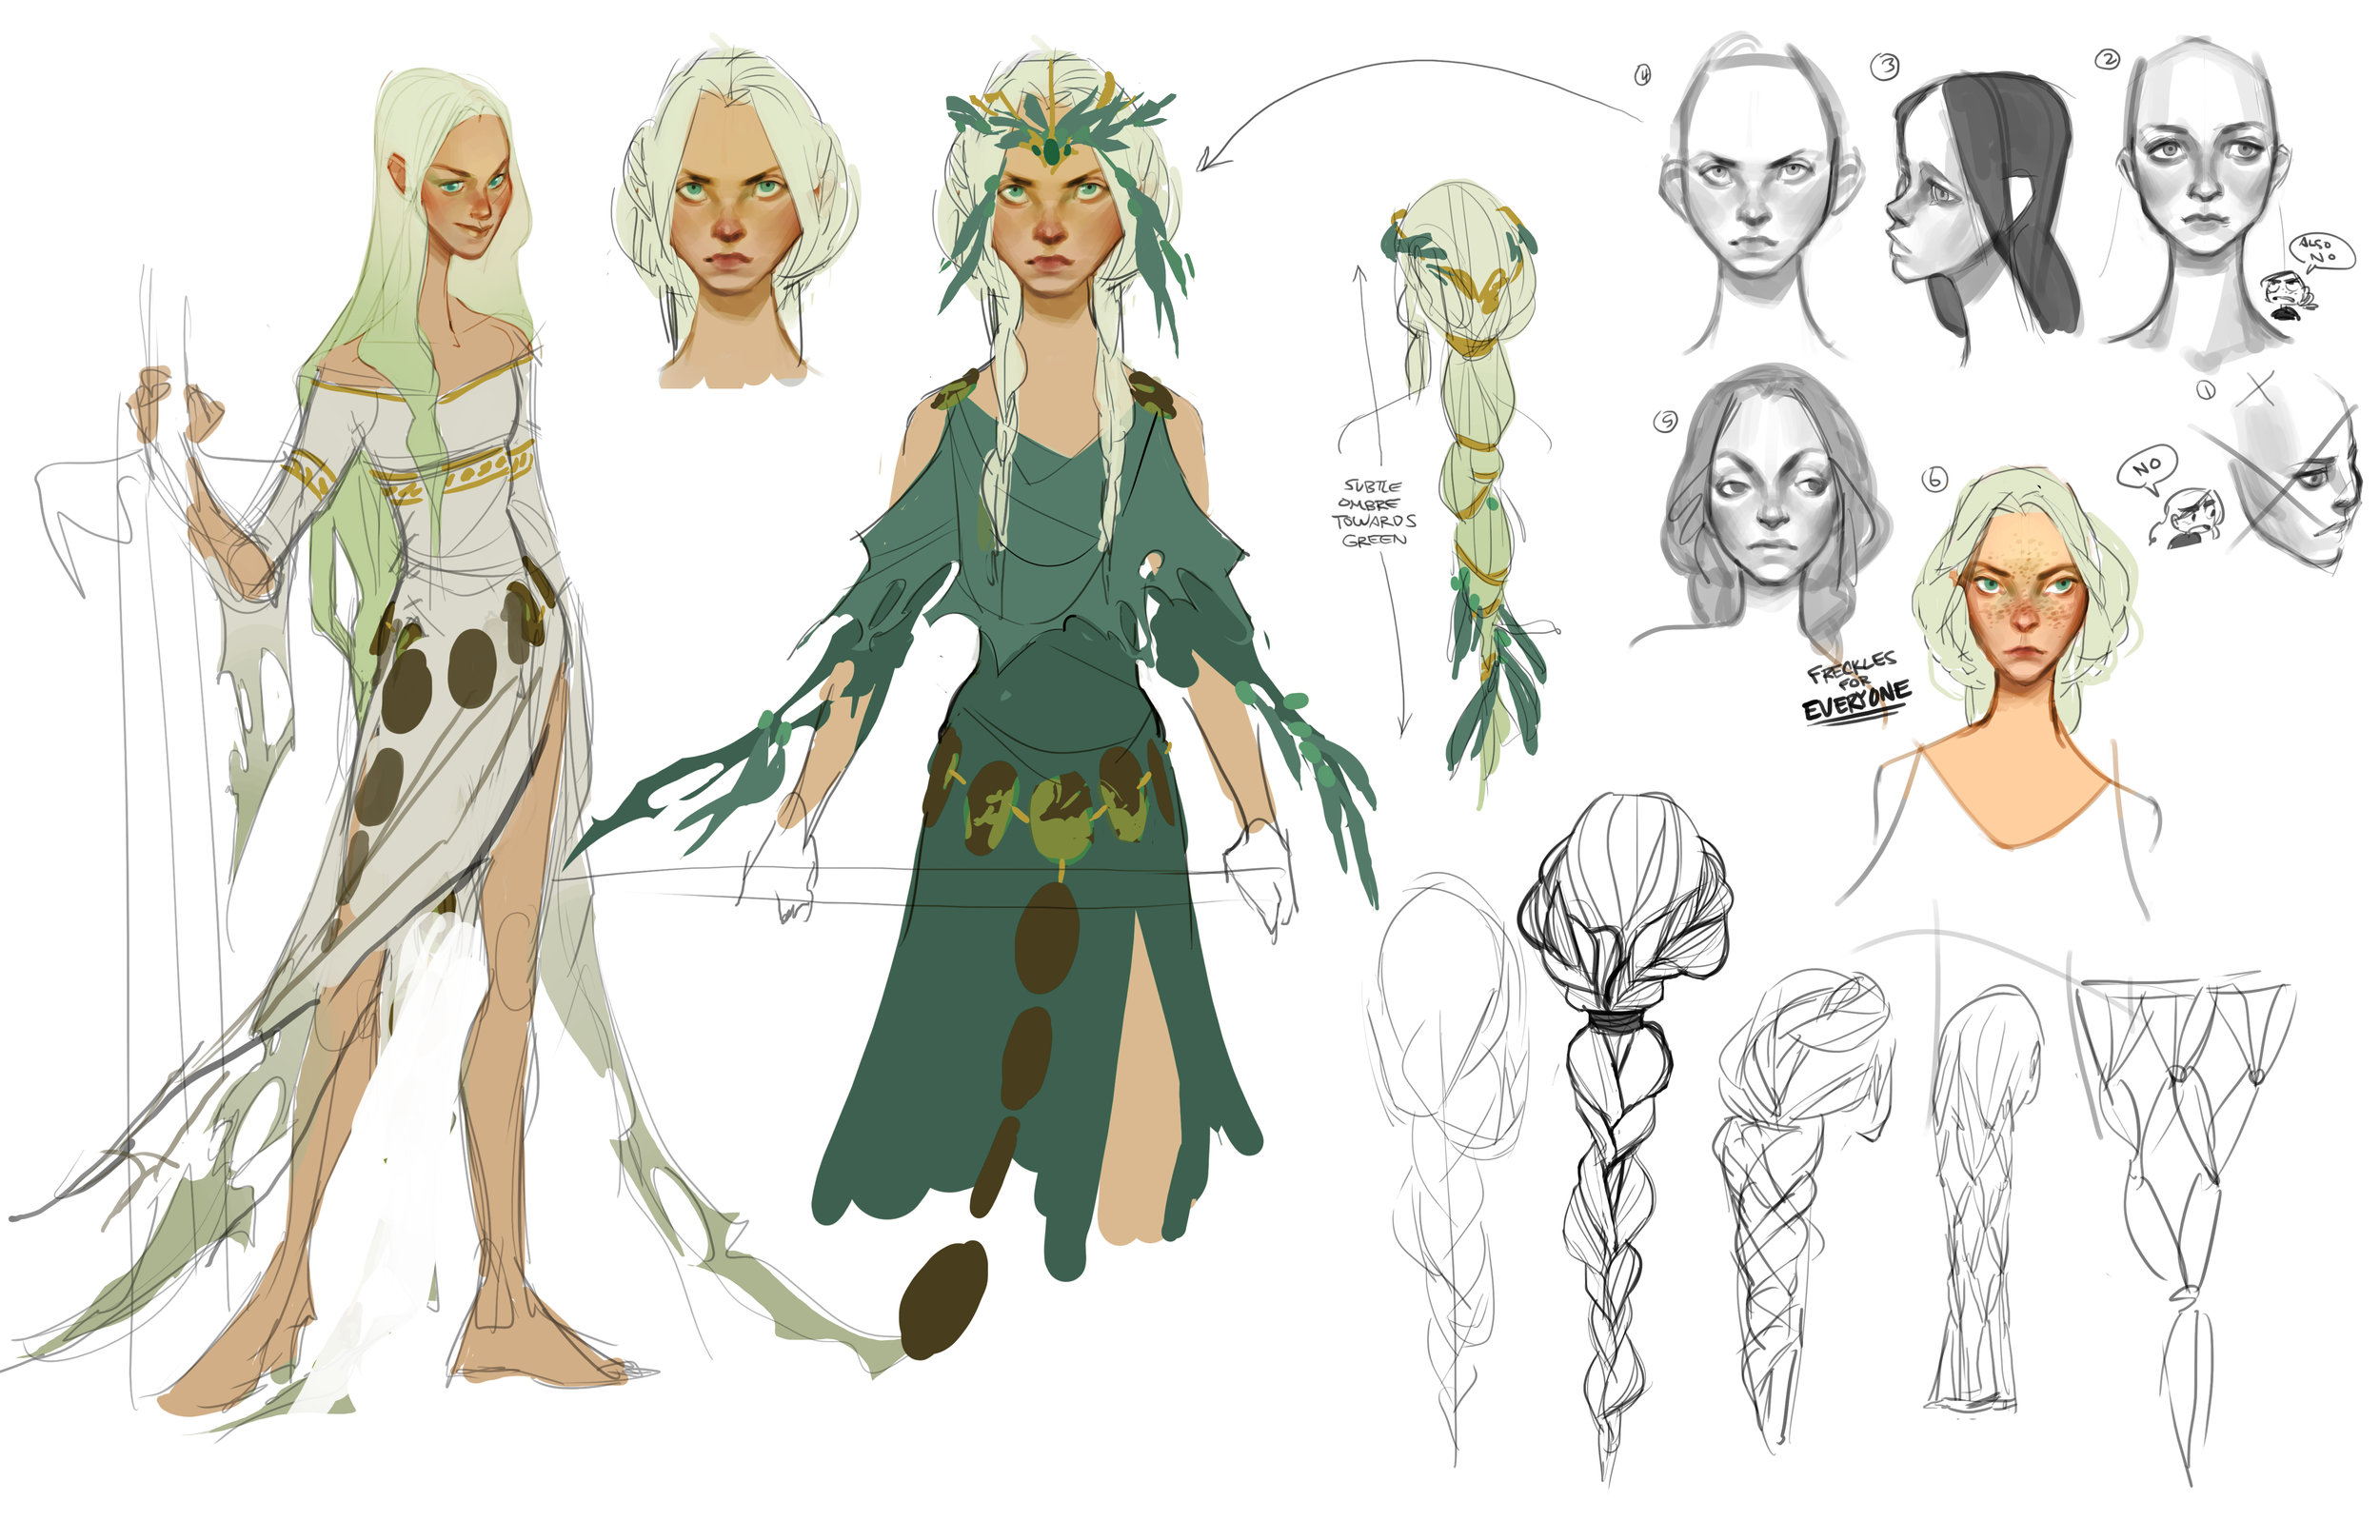 second round of concepts for Evienne